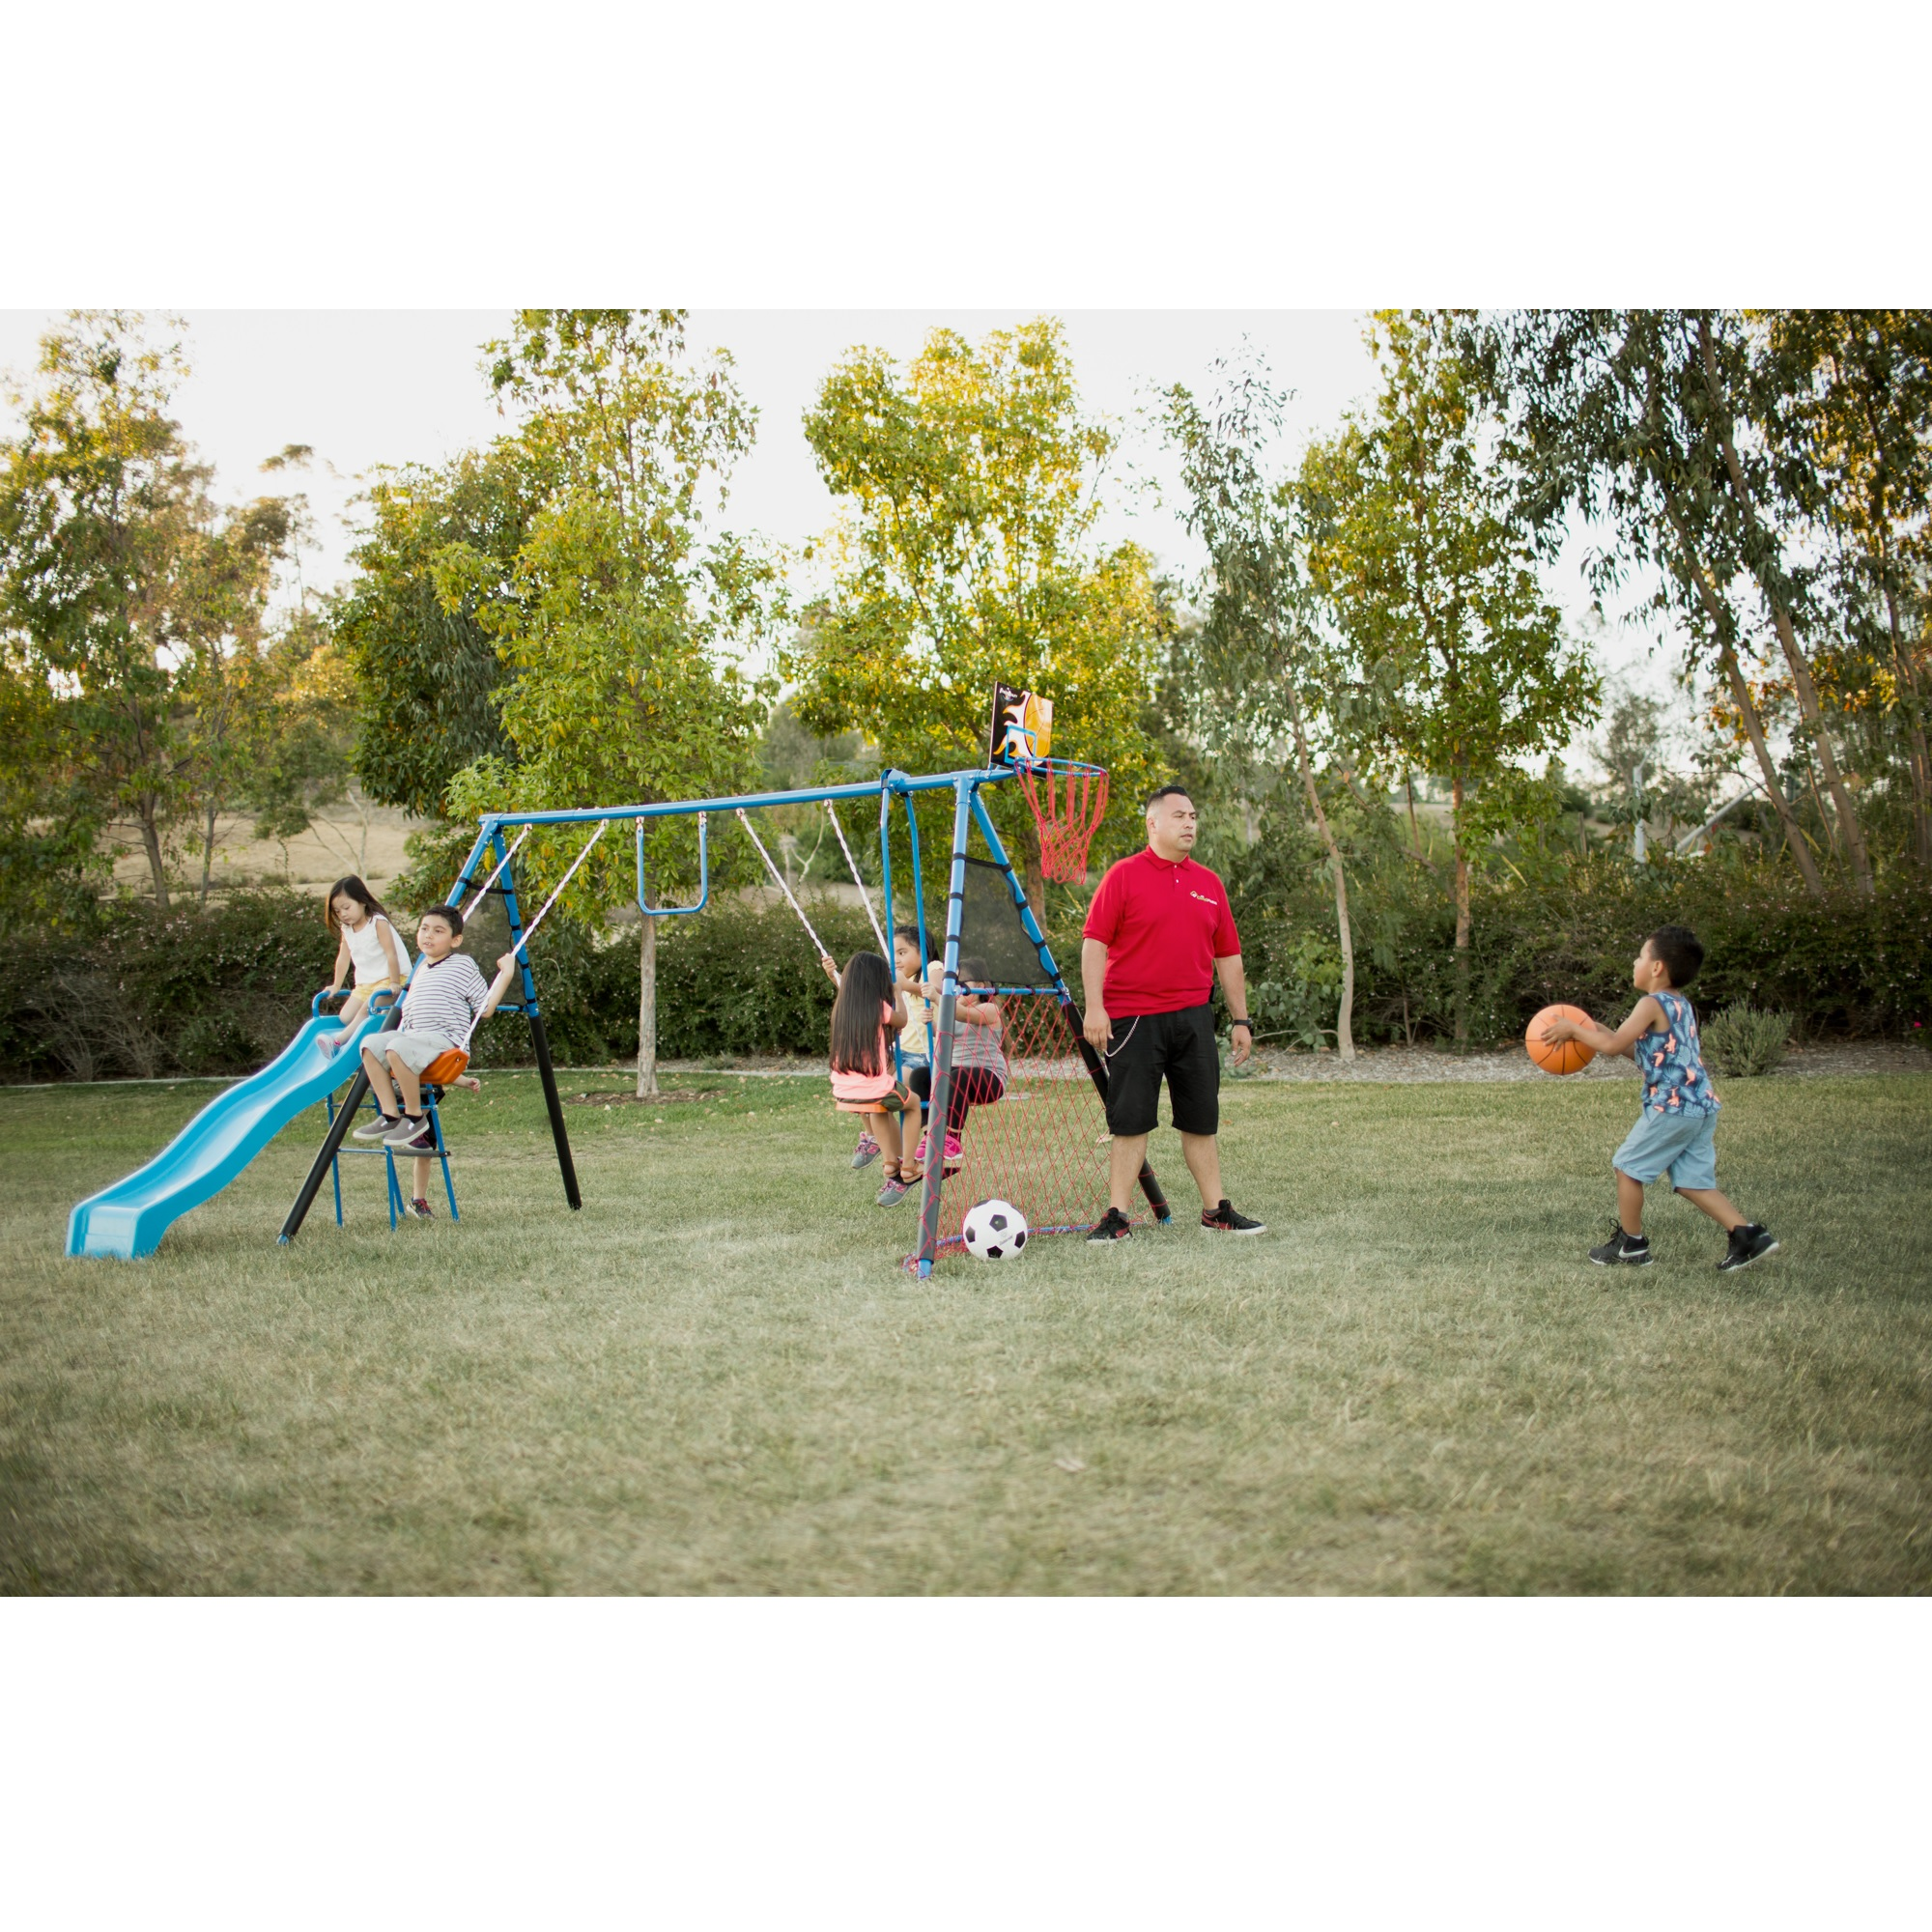 FITNESS REALITY KIDS 7 Station Sports Series Metal Swing Set with Basketball and Soccer